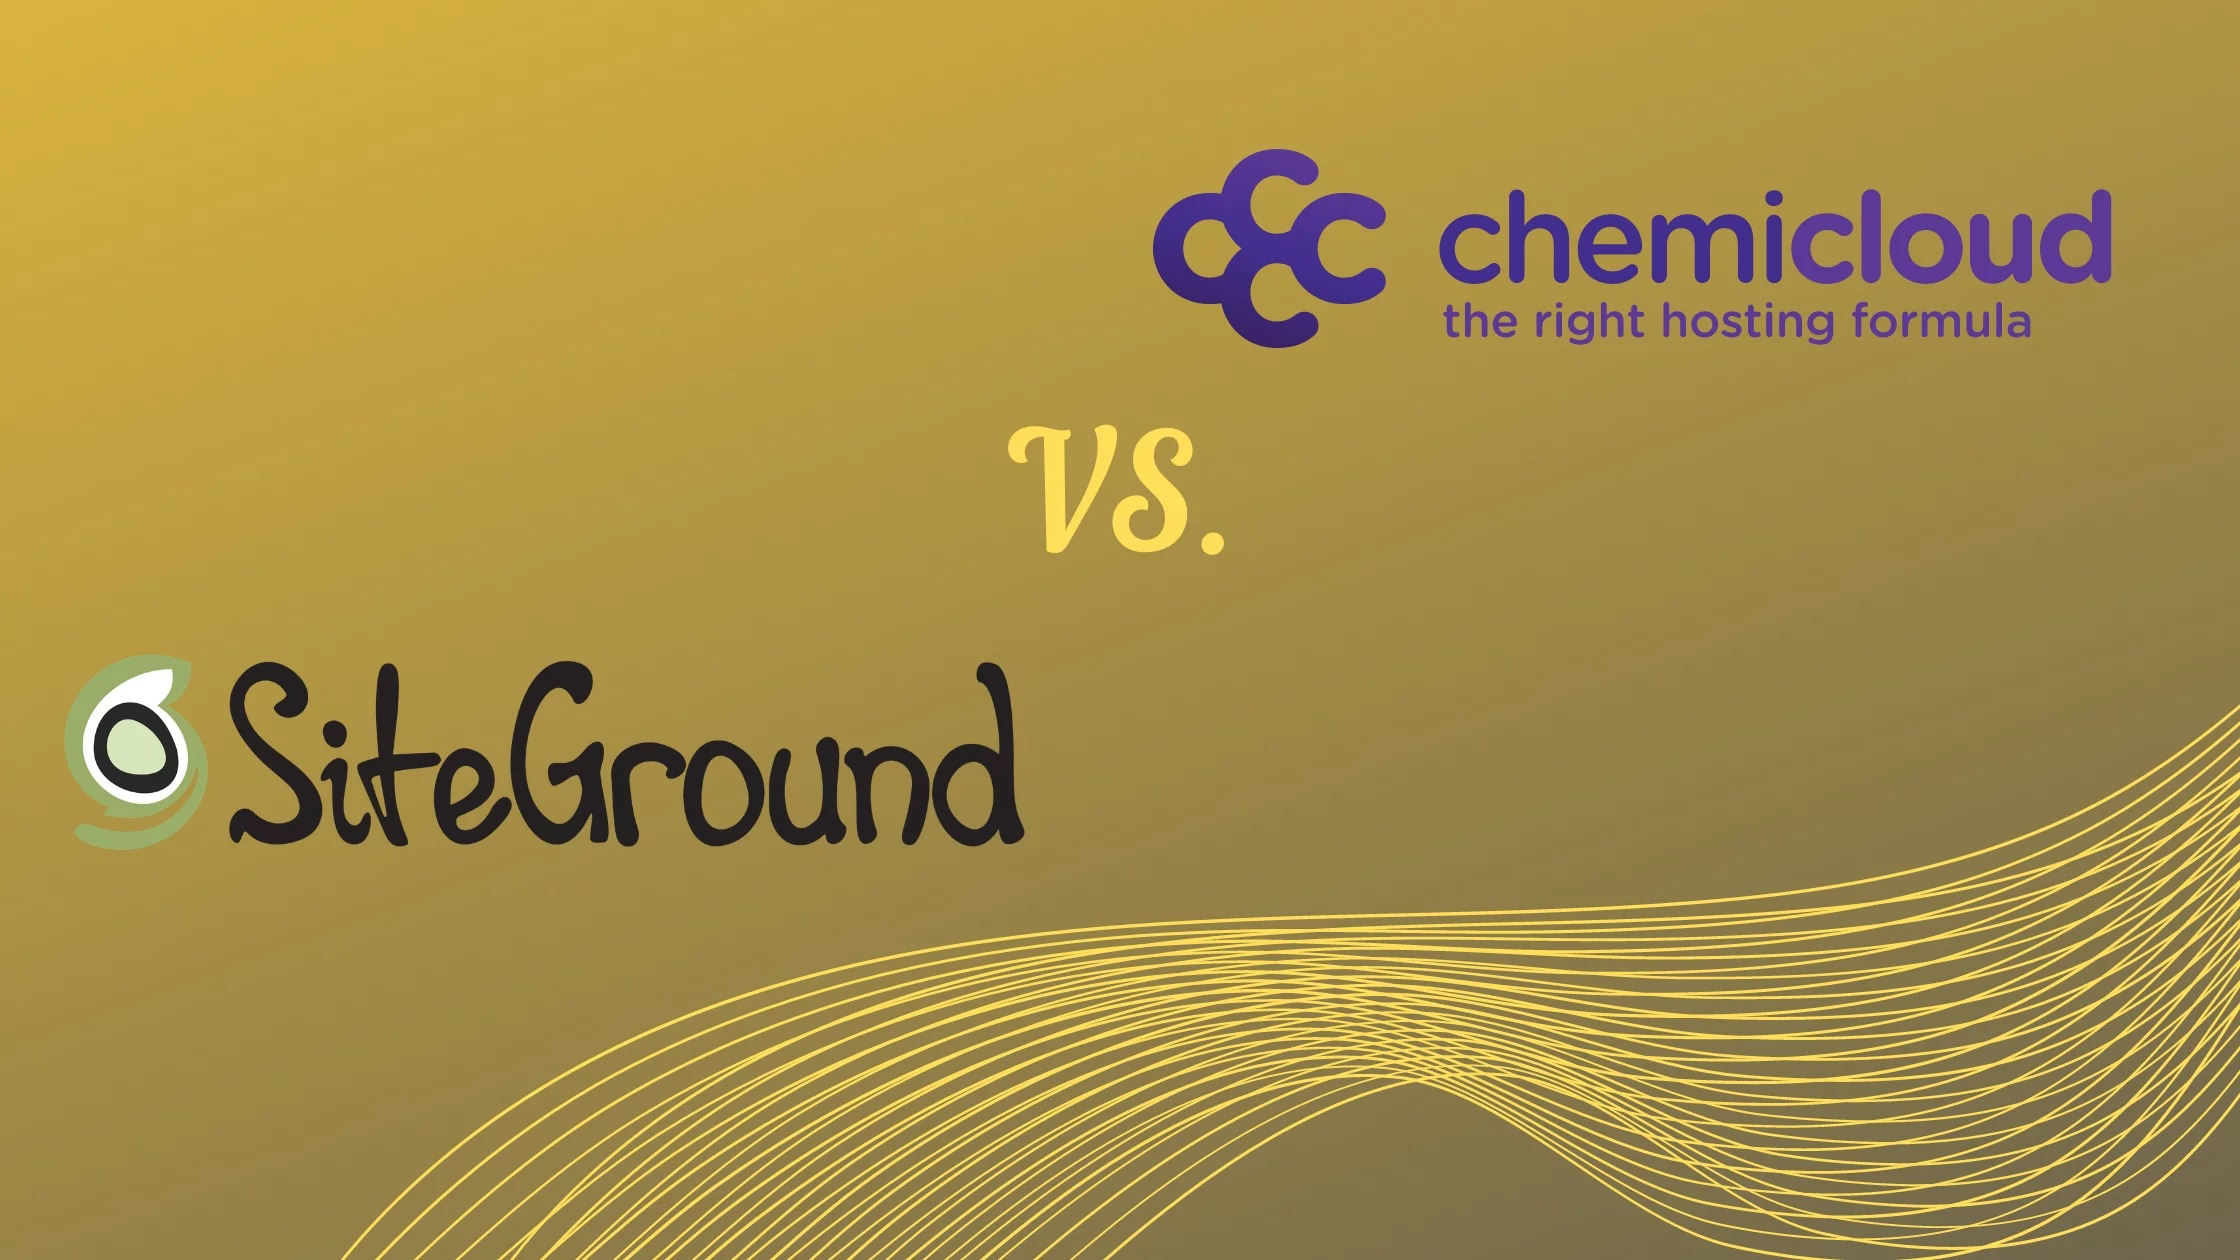 Chemicloud-vs-Siteground-Comparasion-select-the-best-web-hosting